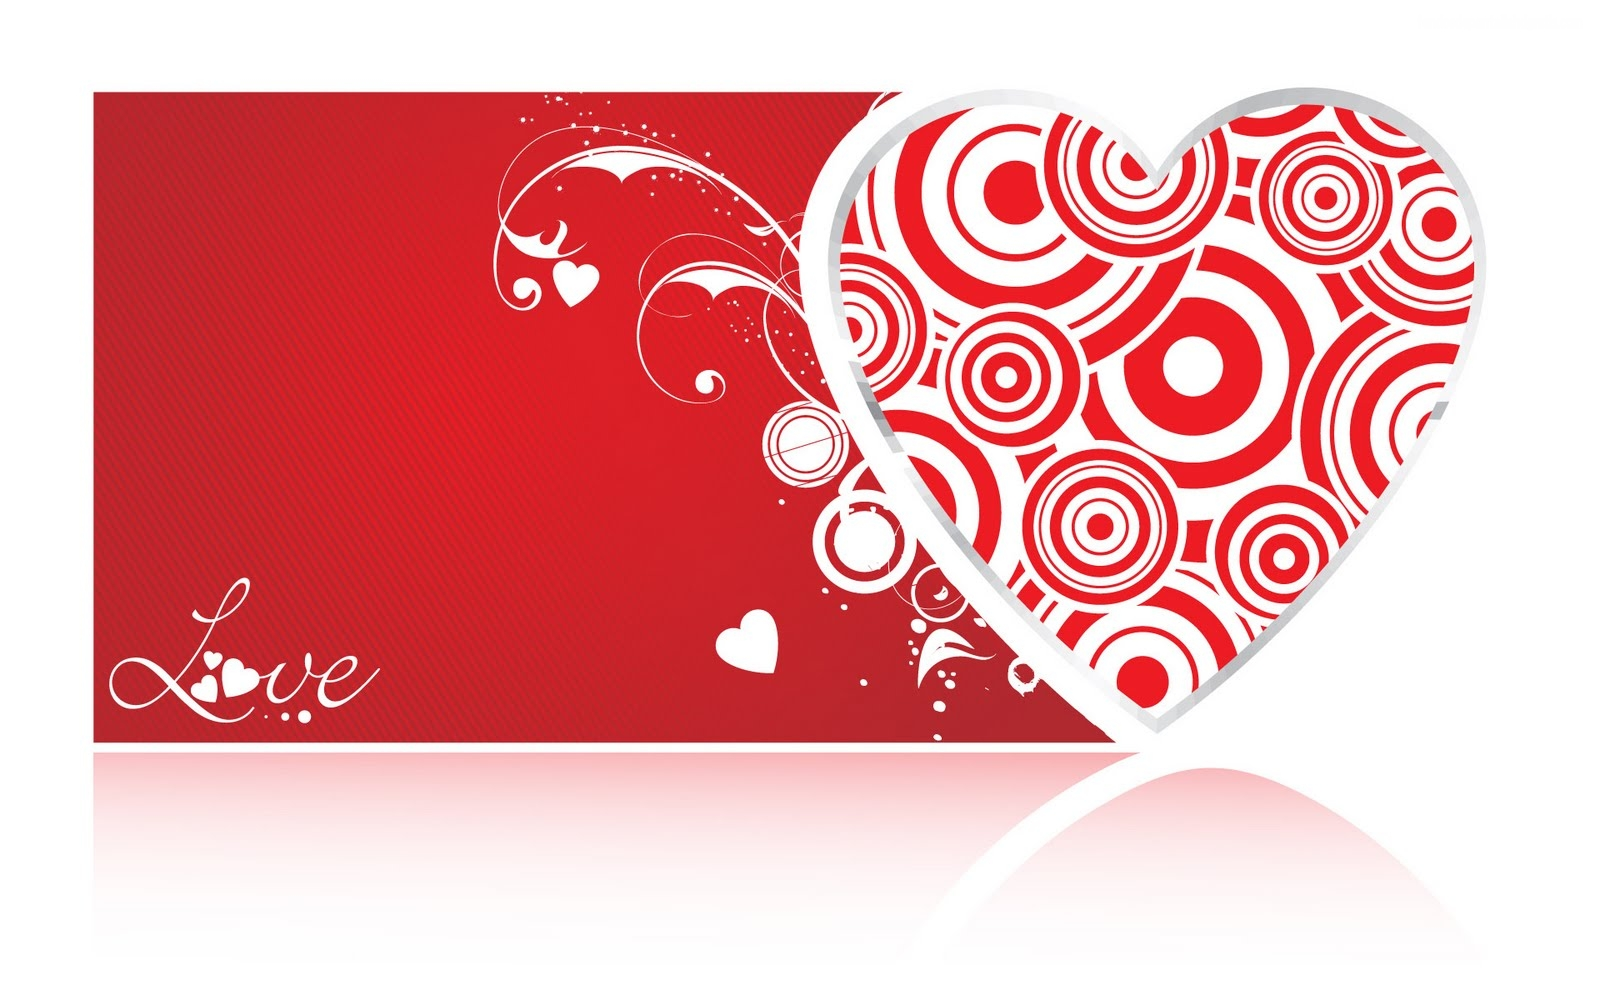 Love wallpapers hd amor fondos de pantalla love 3d for Love in design